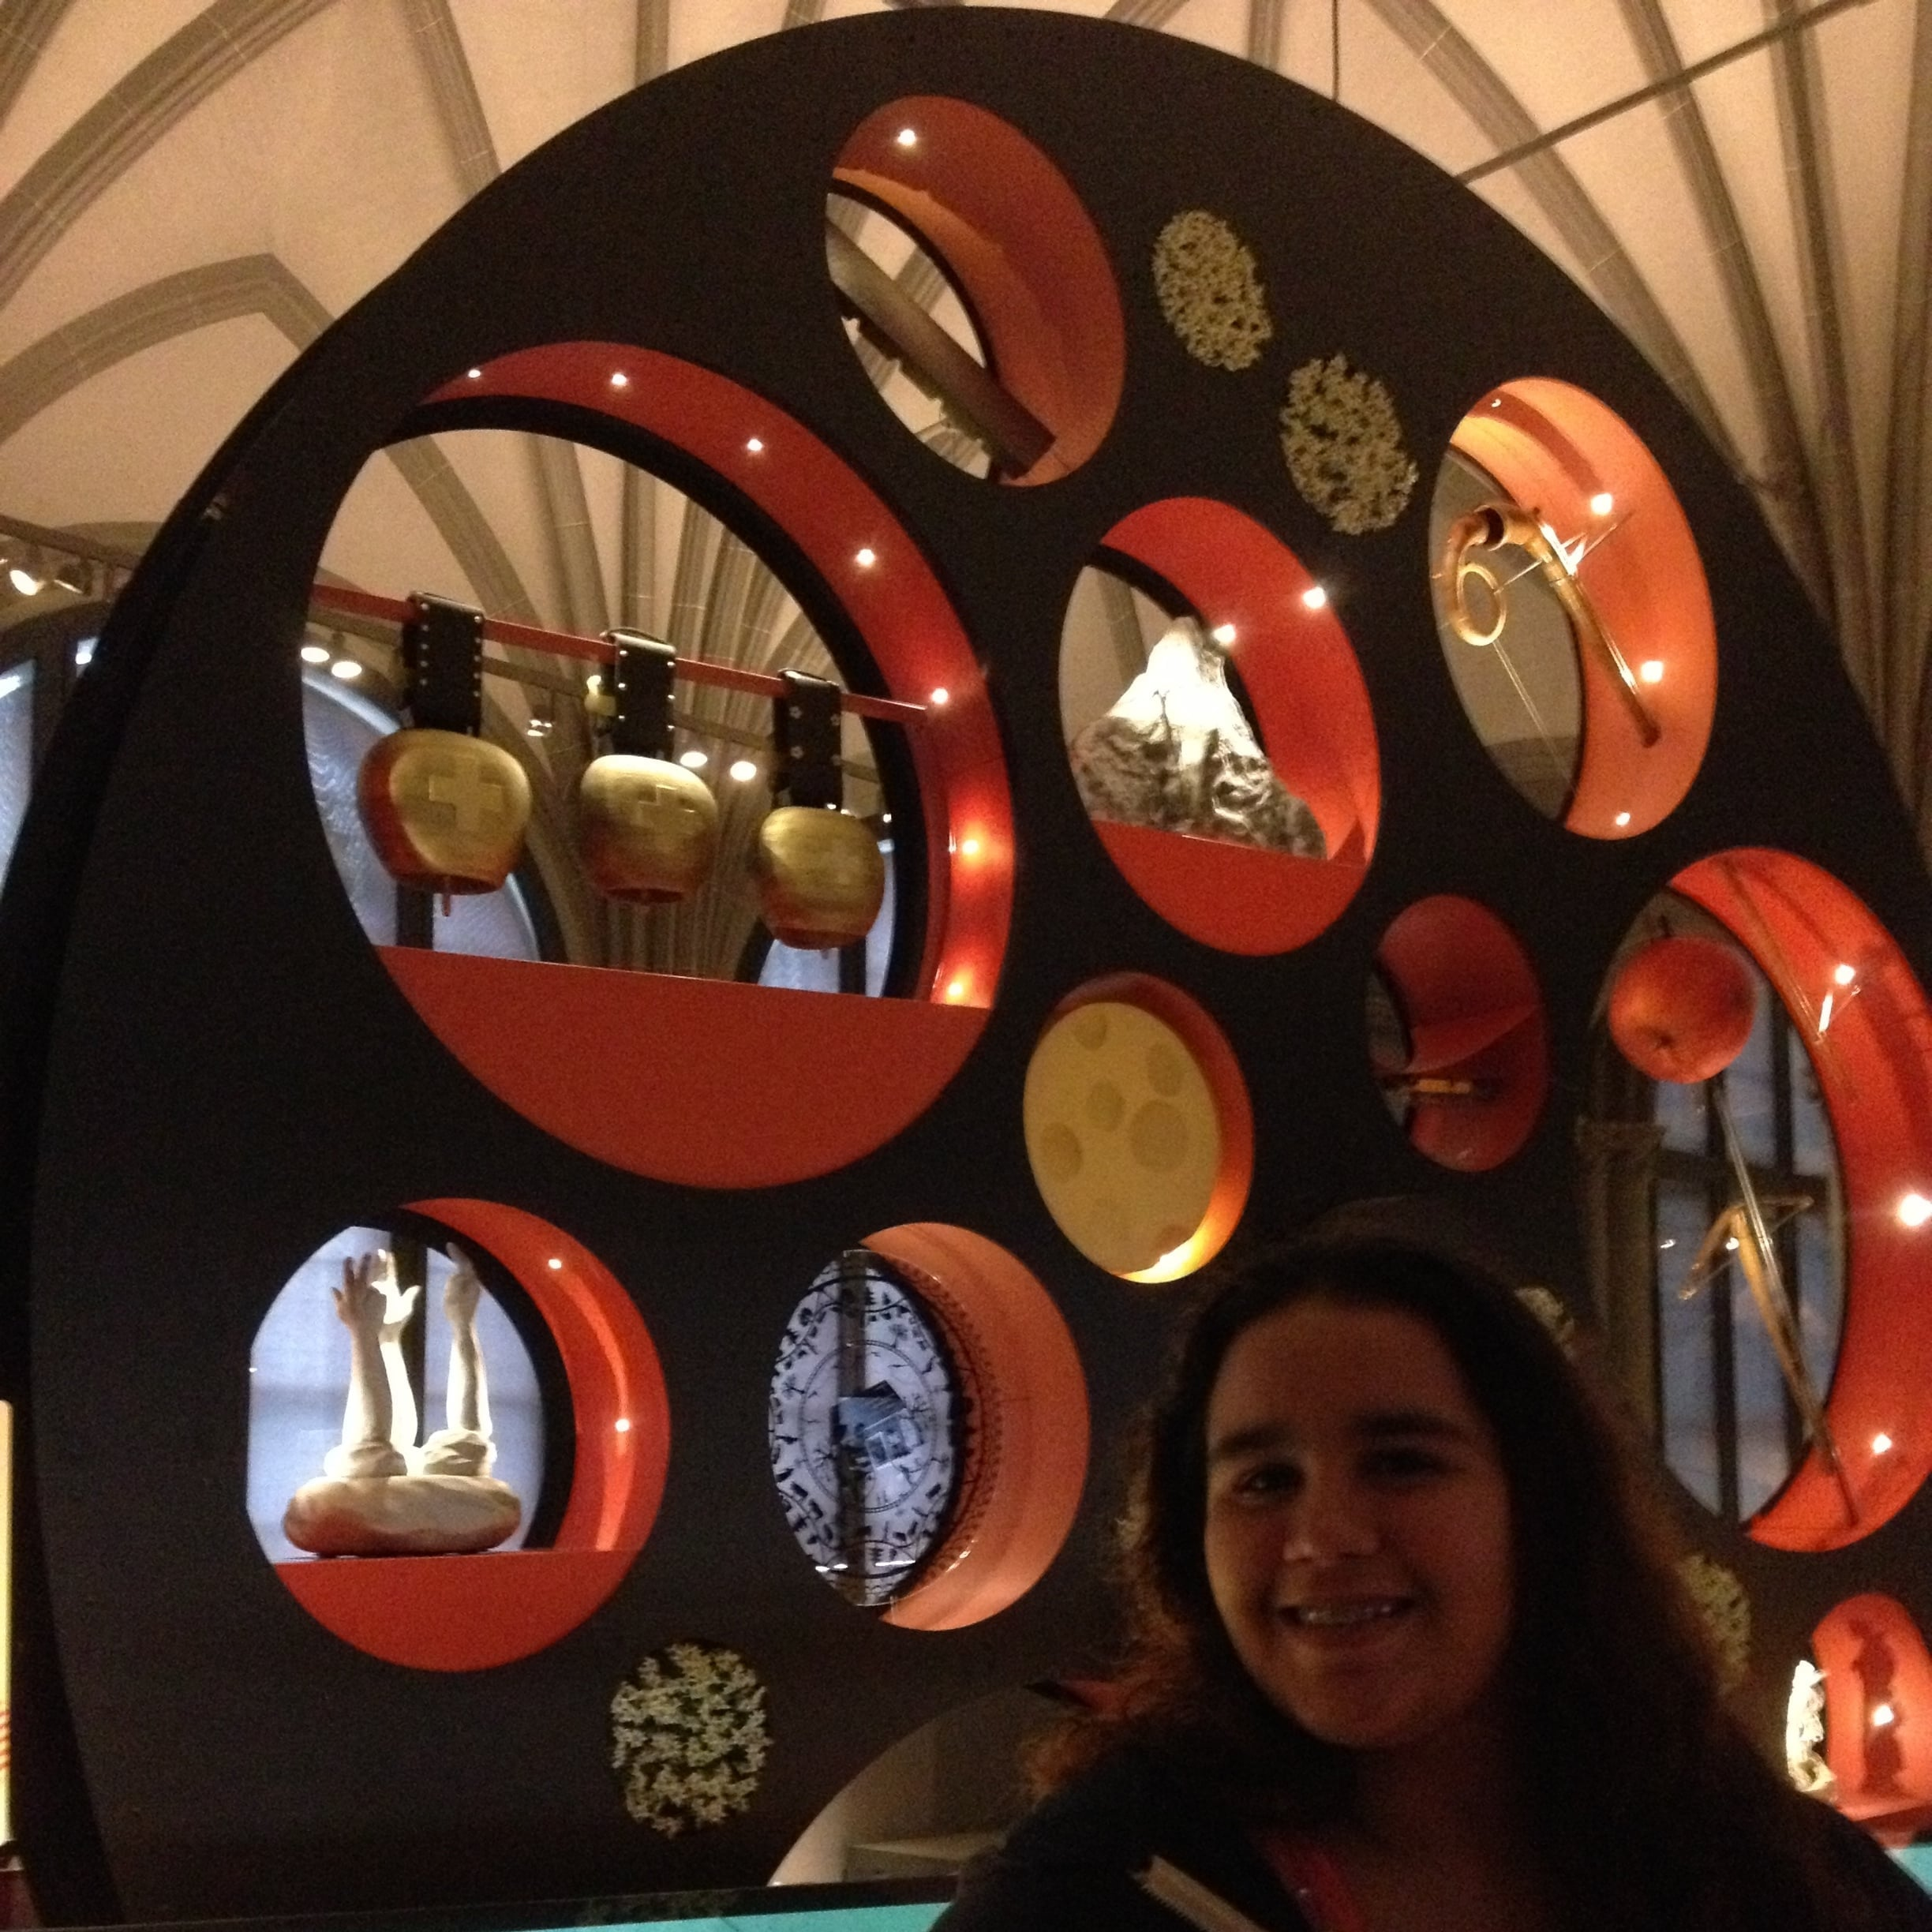 This wheel with images of Heidi, William Tell, cowbells and cheeses is an installation in the Swiss history area at the National Museum. Photo: Bruny Nieves